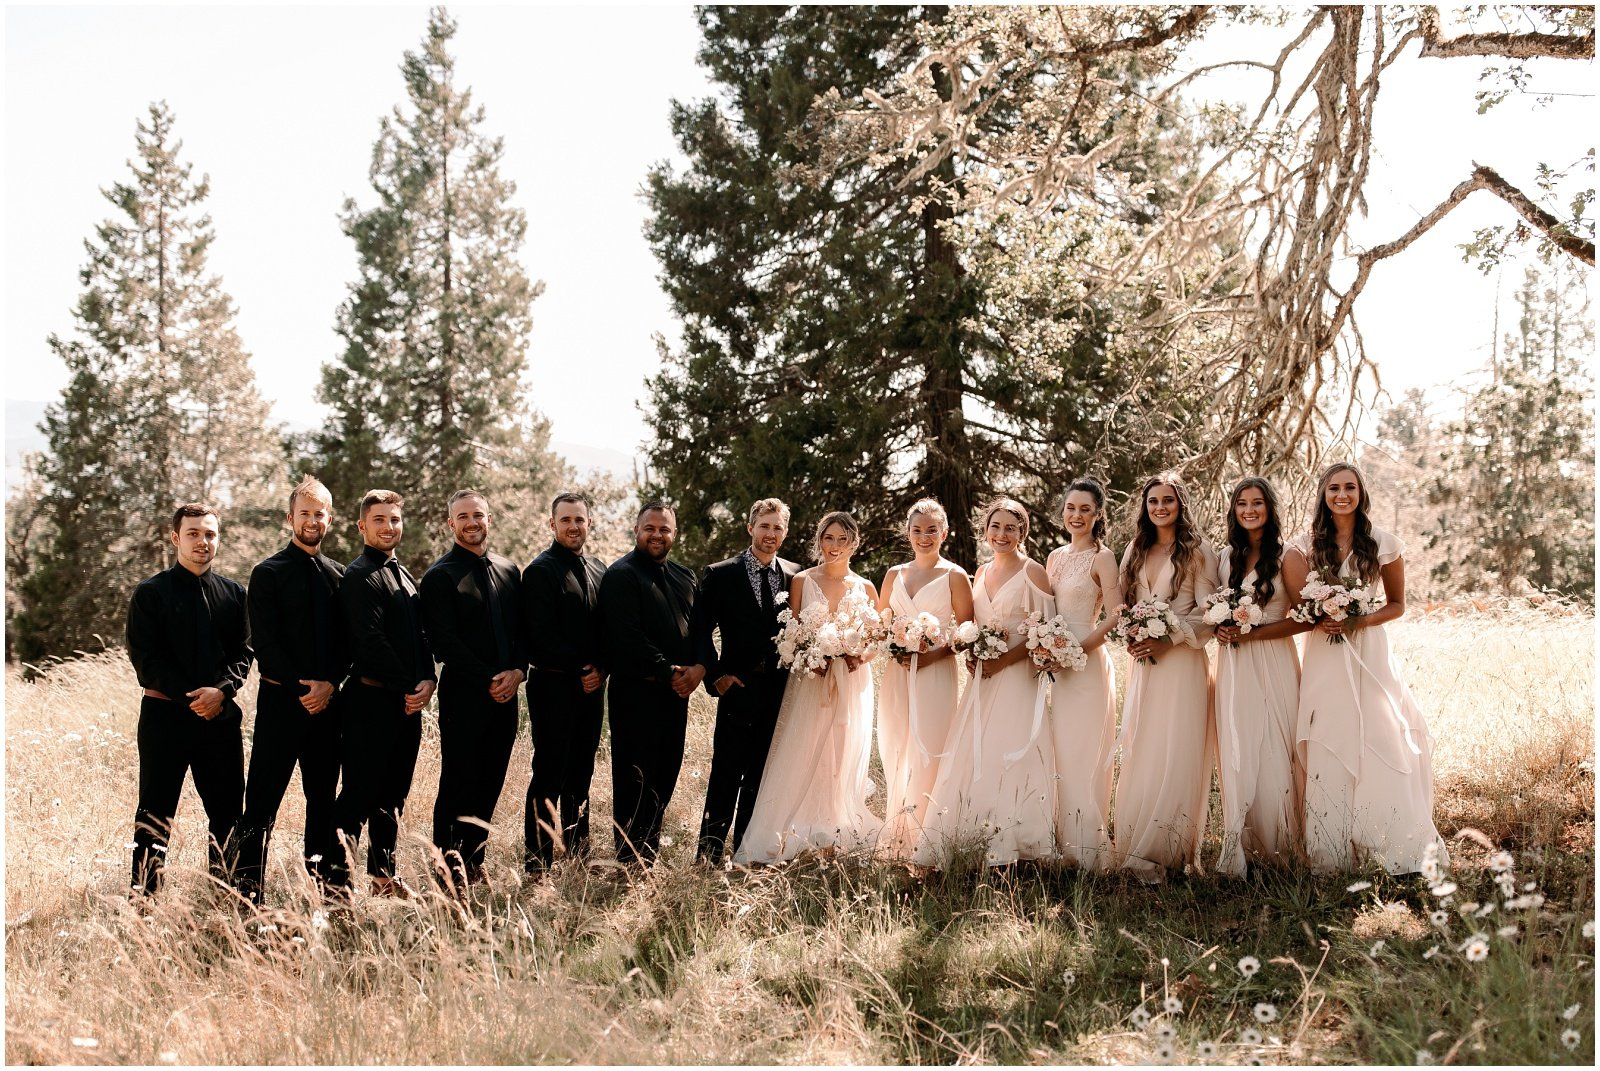 bride and bridesmaids wearing blush dresses and holding white and blush bouquets for their wedding in oregon